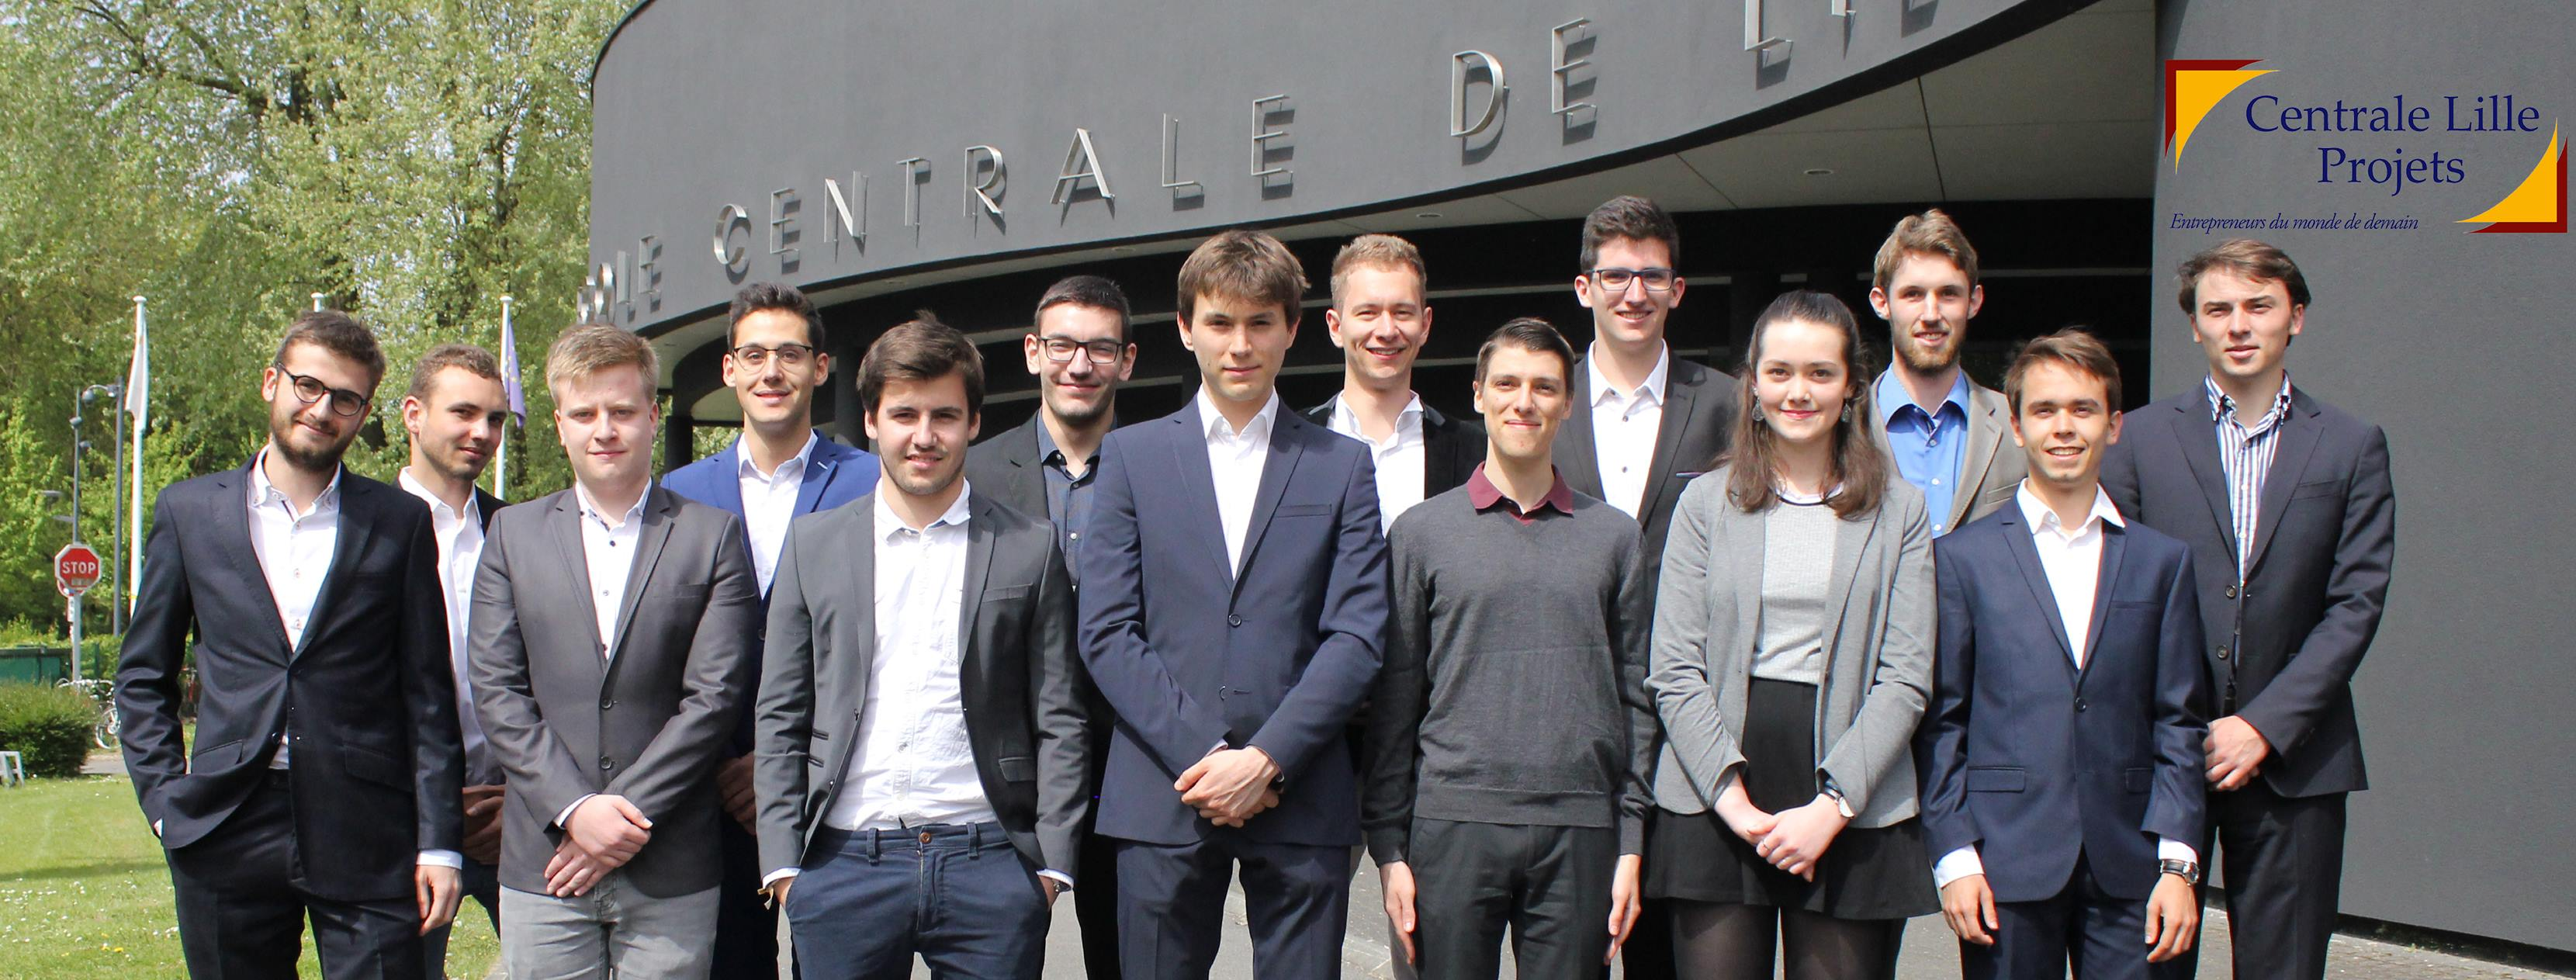 Centrale Lille Projets